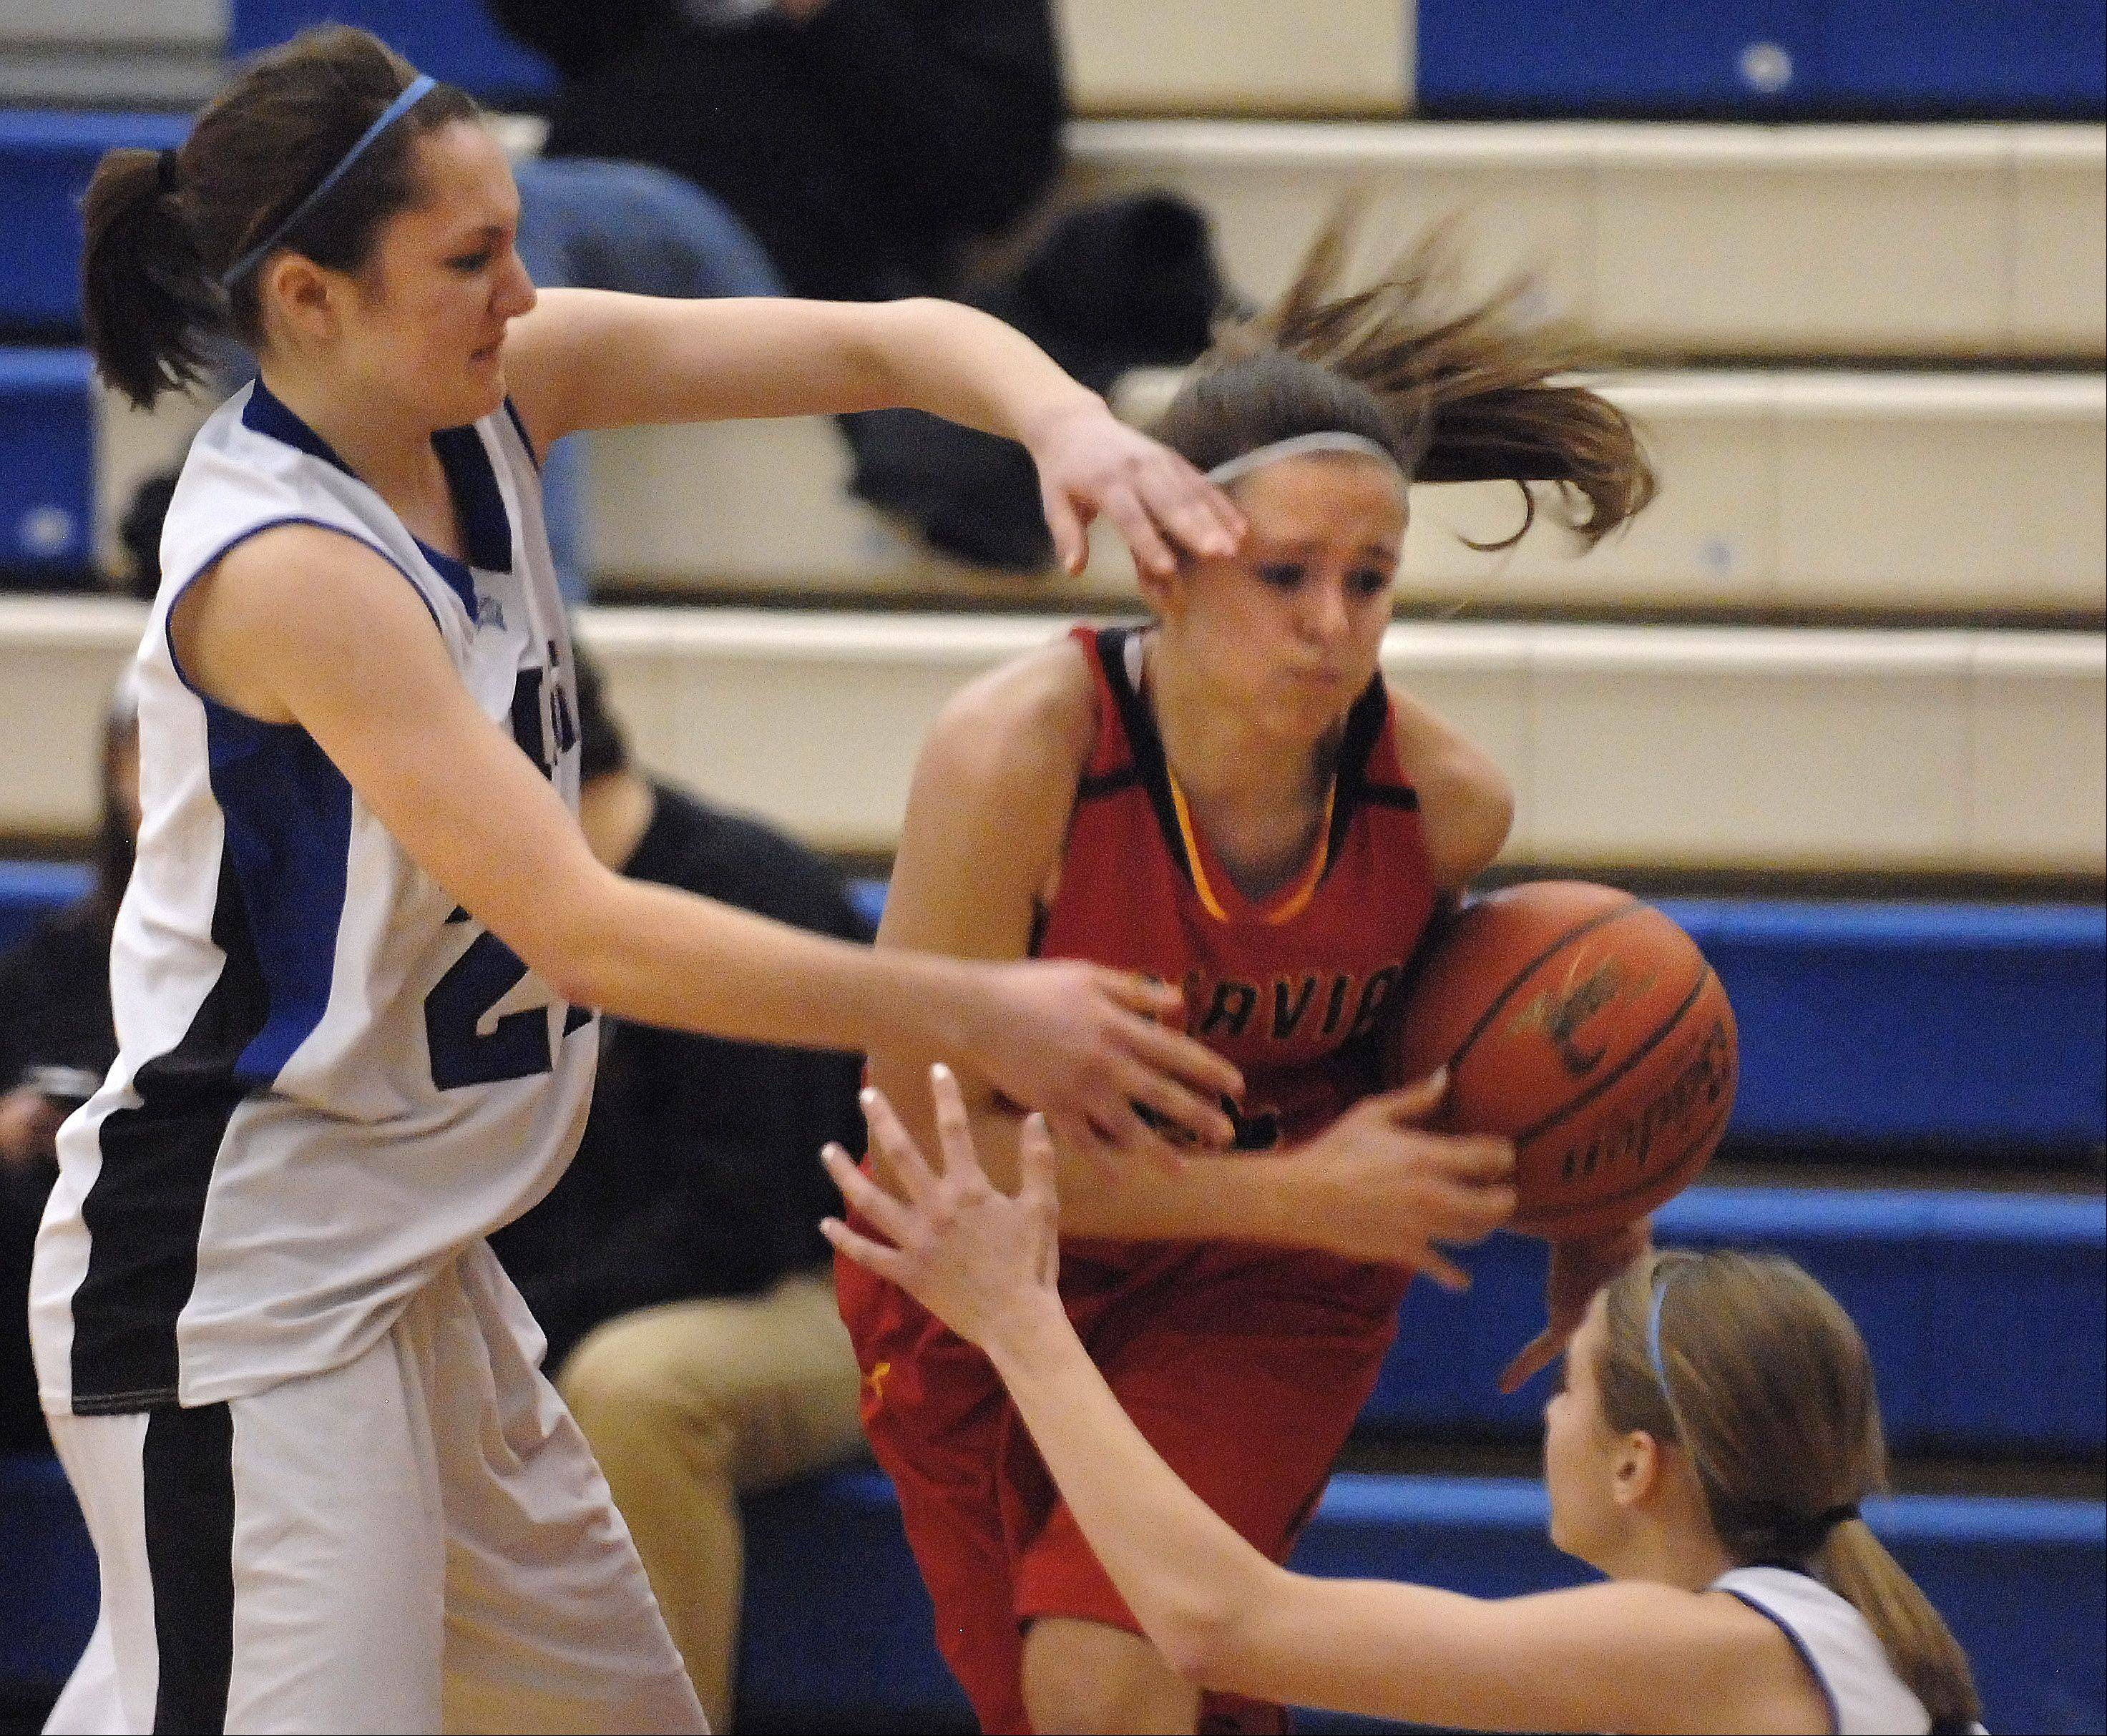 Batavia's Michaela Strehlau is attacked by Geneva's Kelly Sharpe and Stevie Fanale, right.